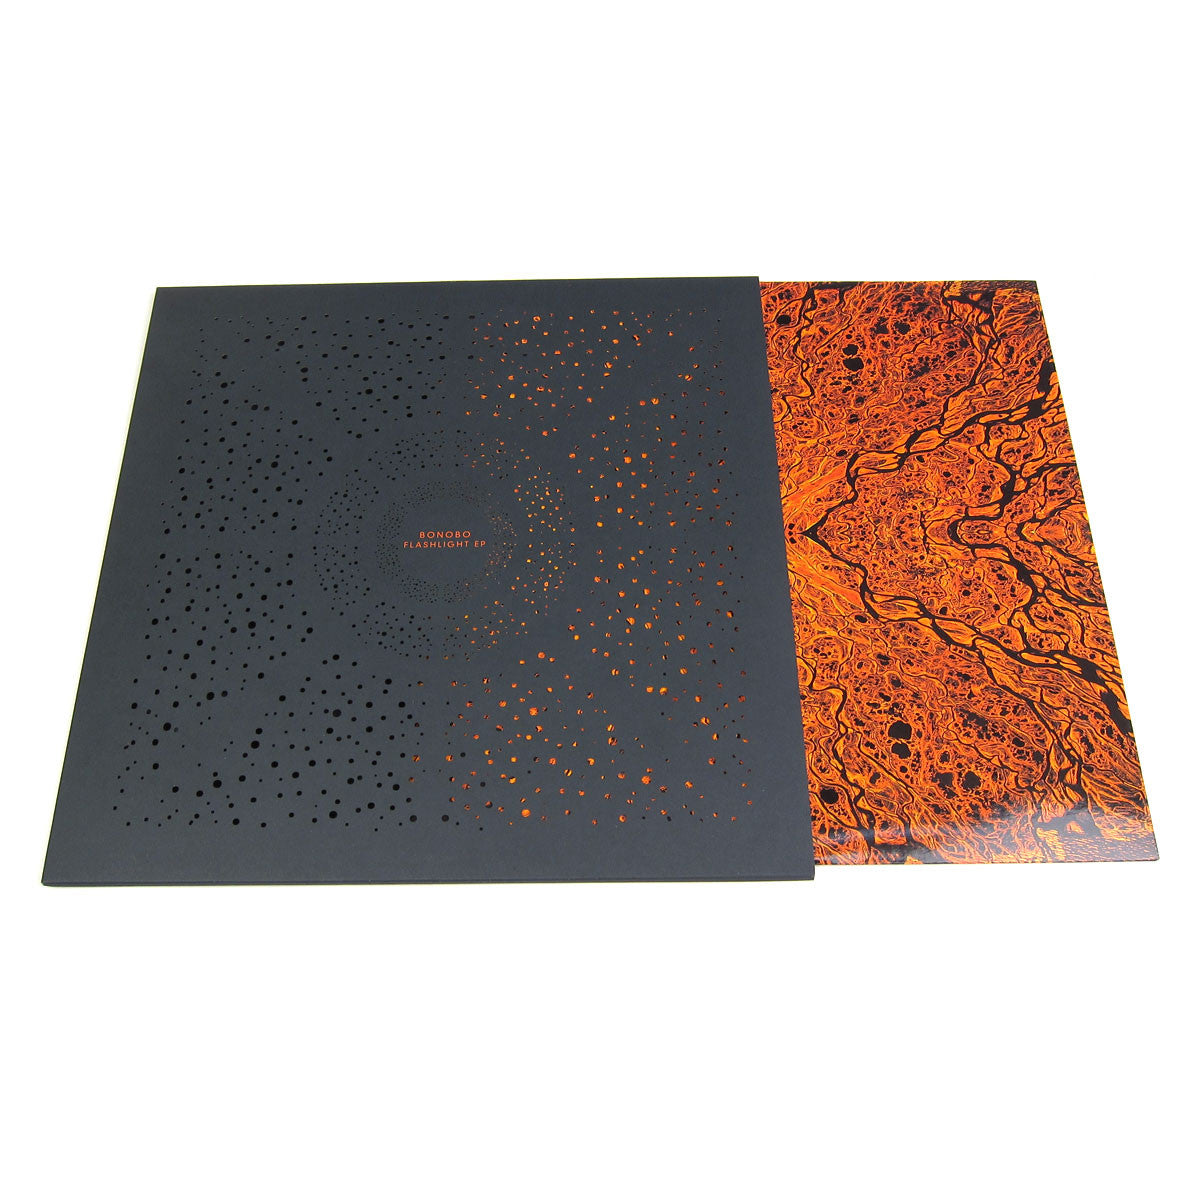 "Bonobo: Flashlight EP (Diecut Sleeve) Vinyl 12"" detail"